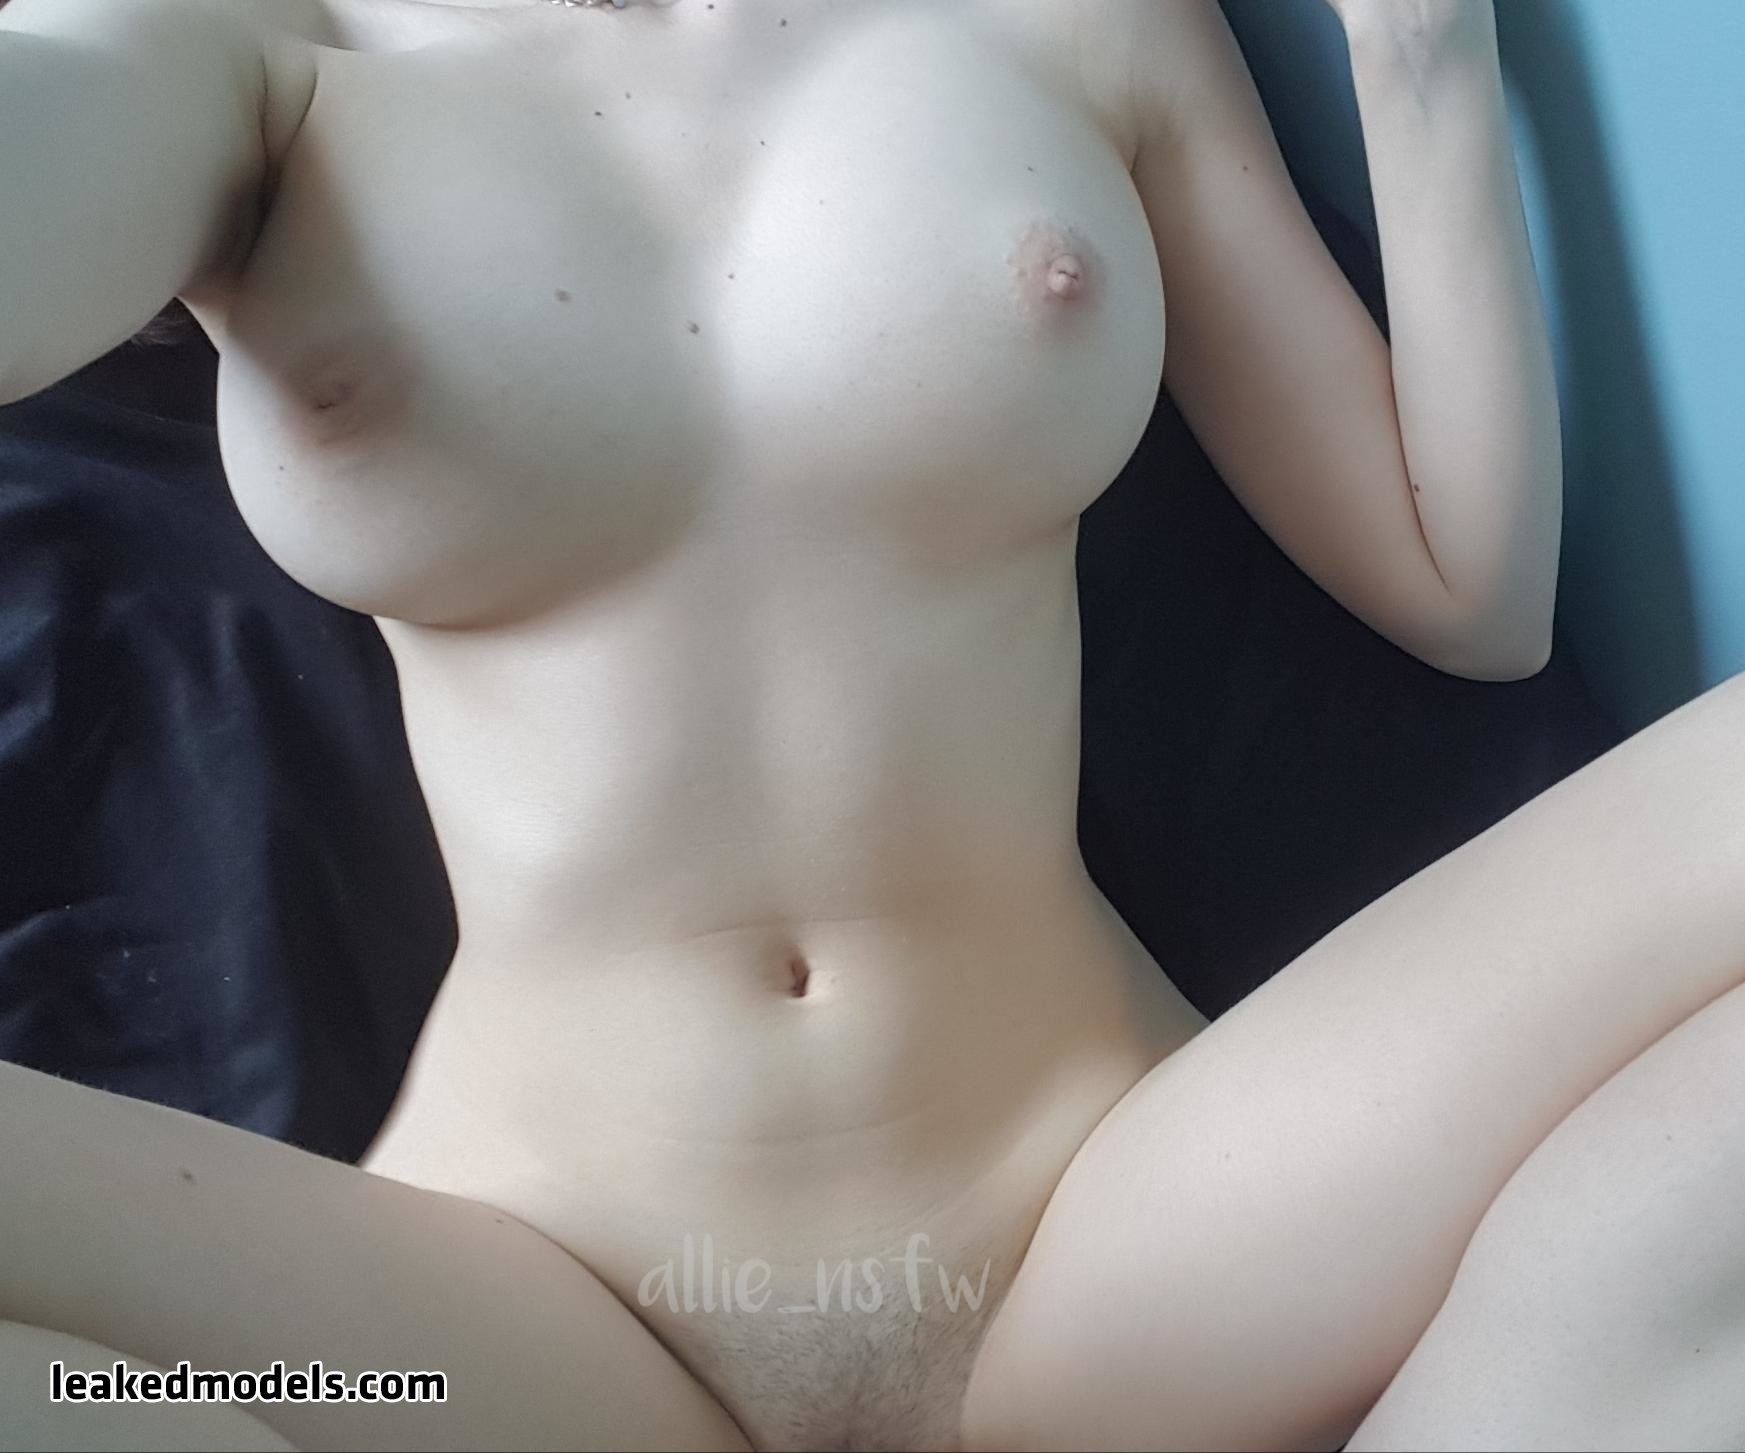 allie_nsfw OnlyFans Nude Leaks (23 Photos)